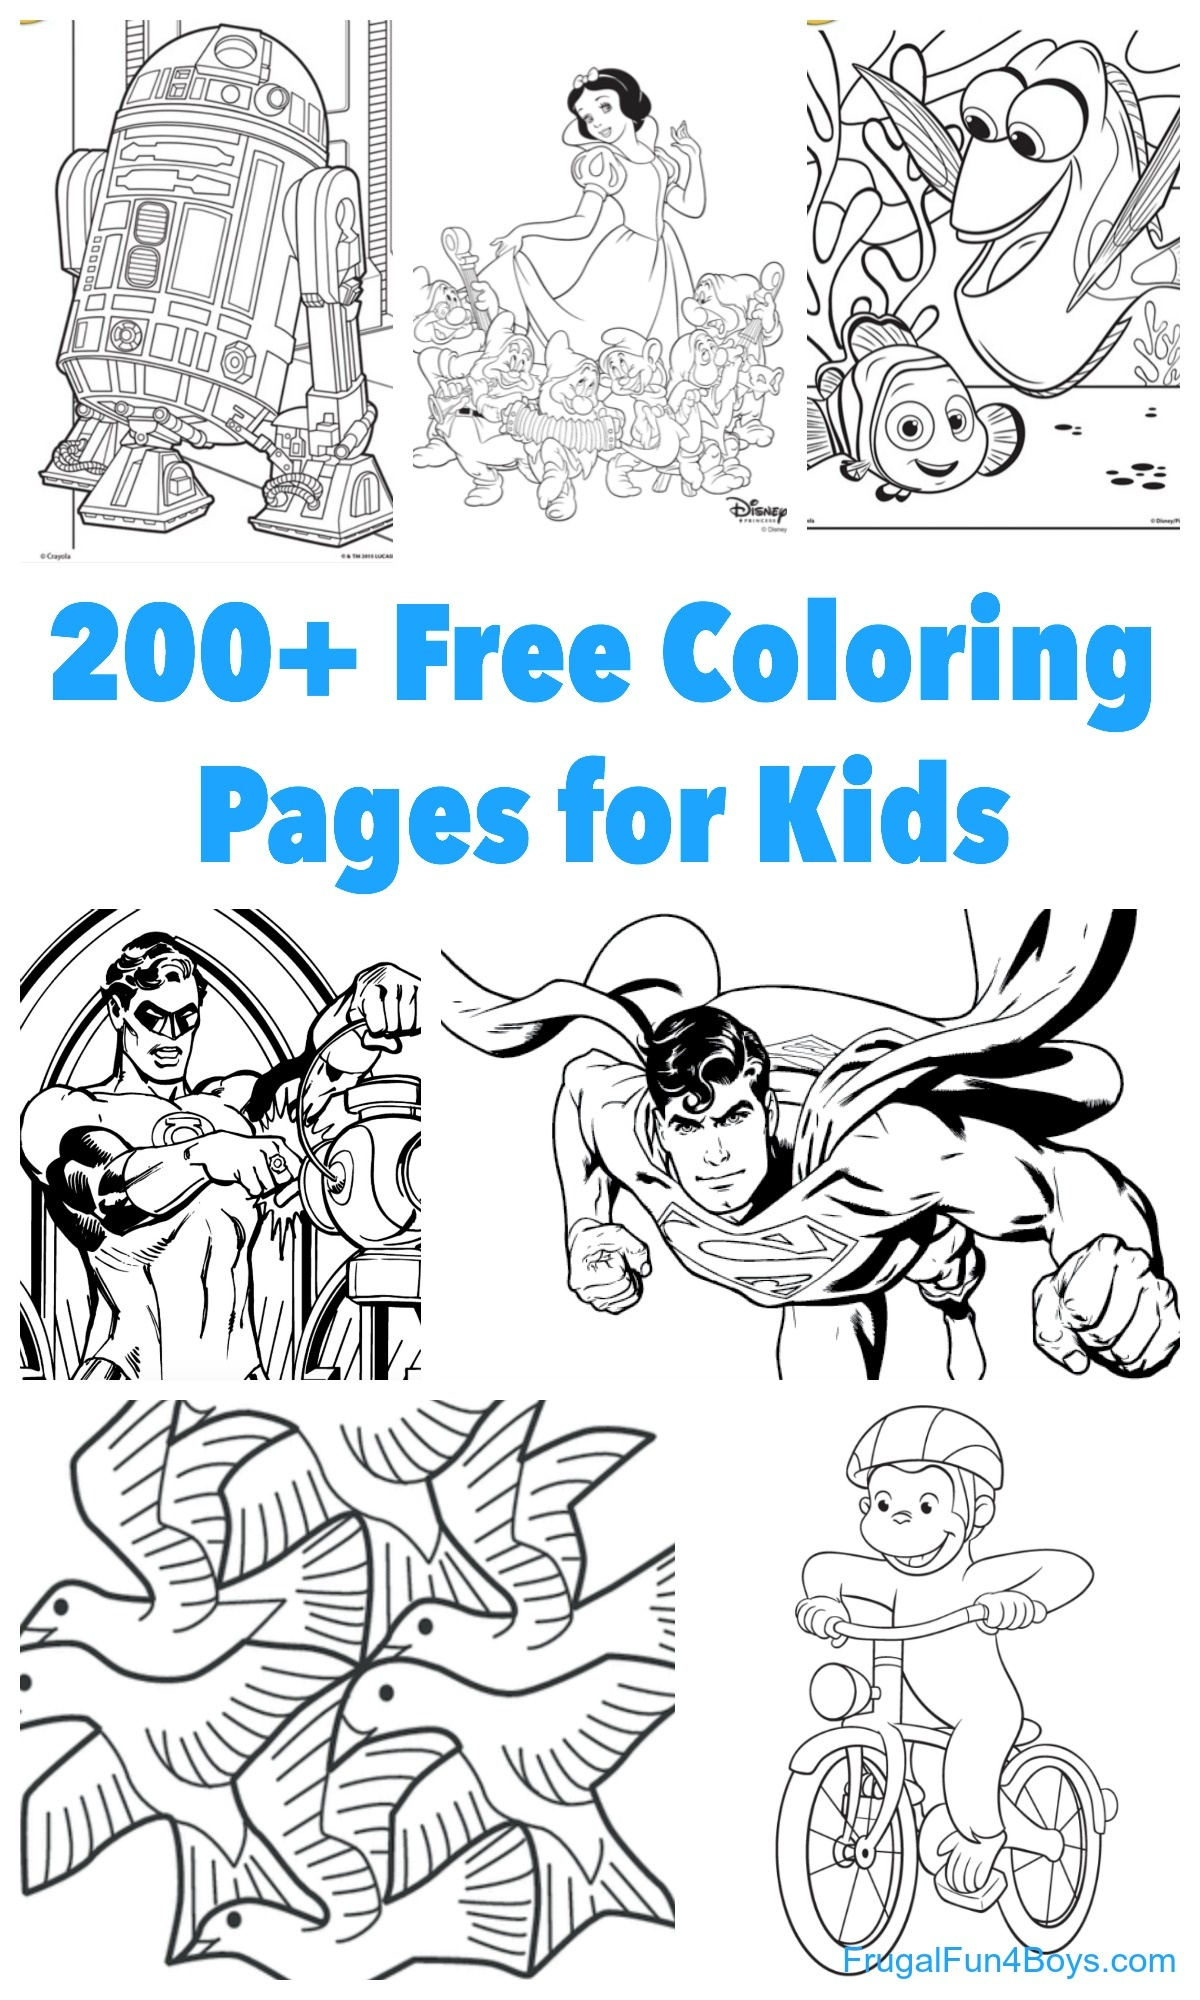 200+ Printable Coloring Pages For Kids - Frugal Fun For Boys And Girls - Free Printable Coloring Pages For Kids